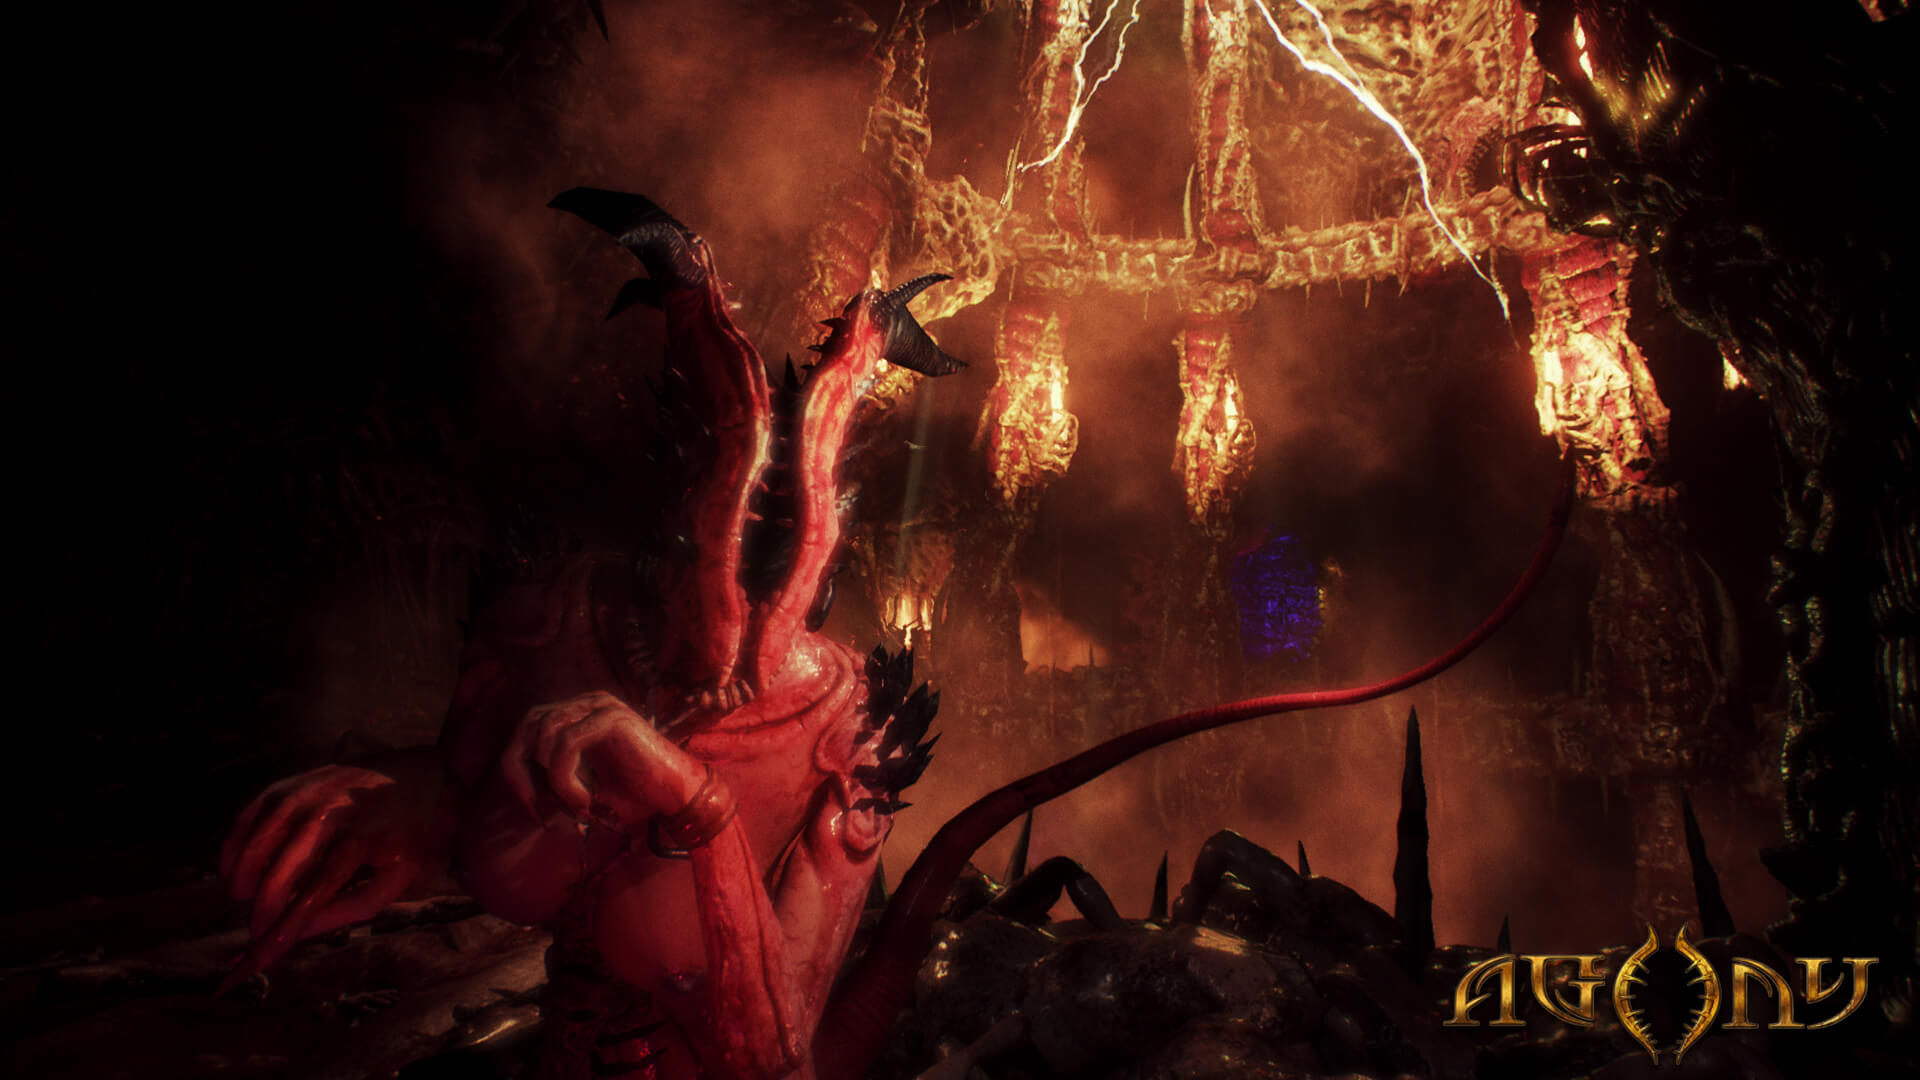 Mystical Creatures In The Fall Wallpaper New Agony Trailers Deliver The Pain Dread Central